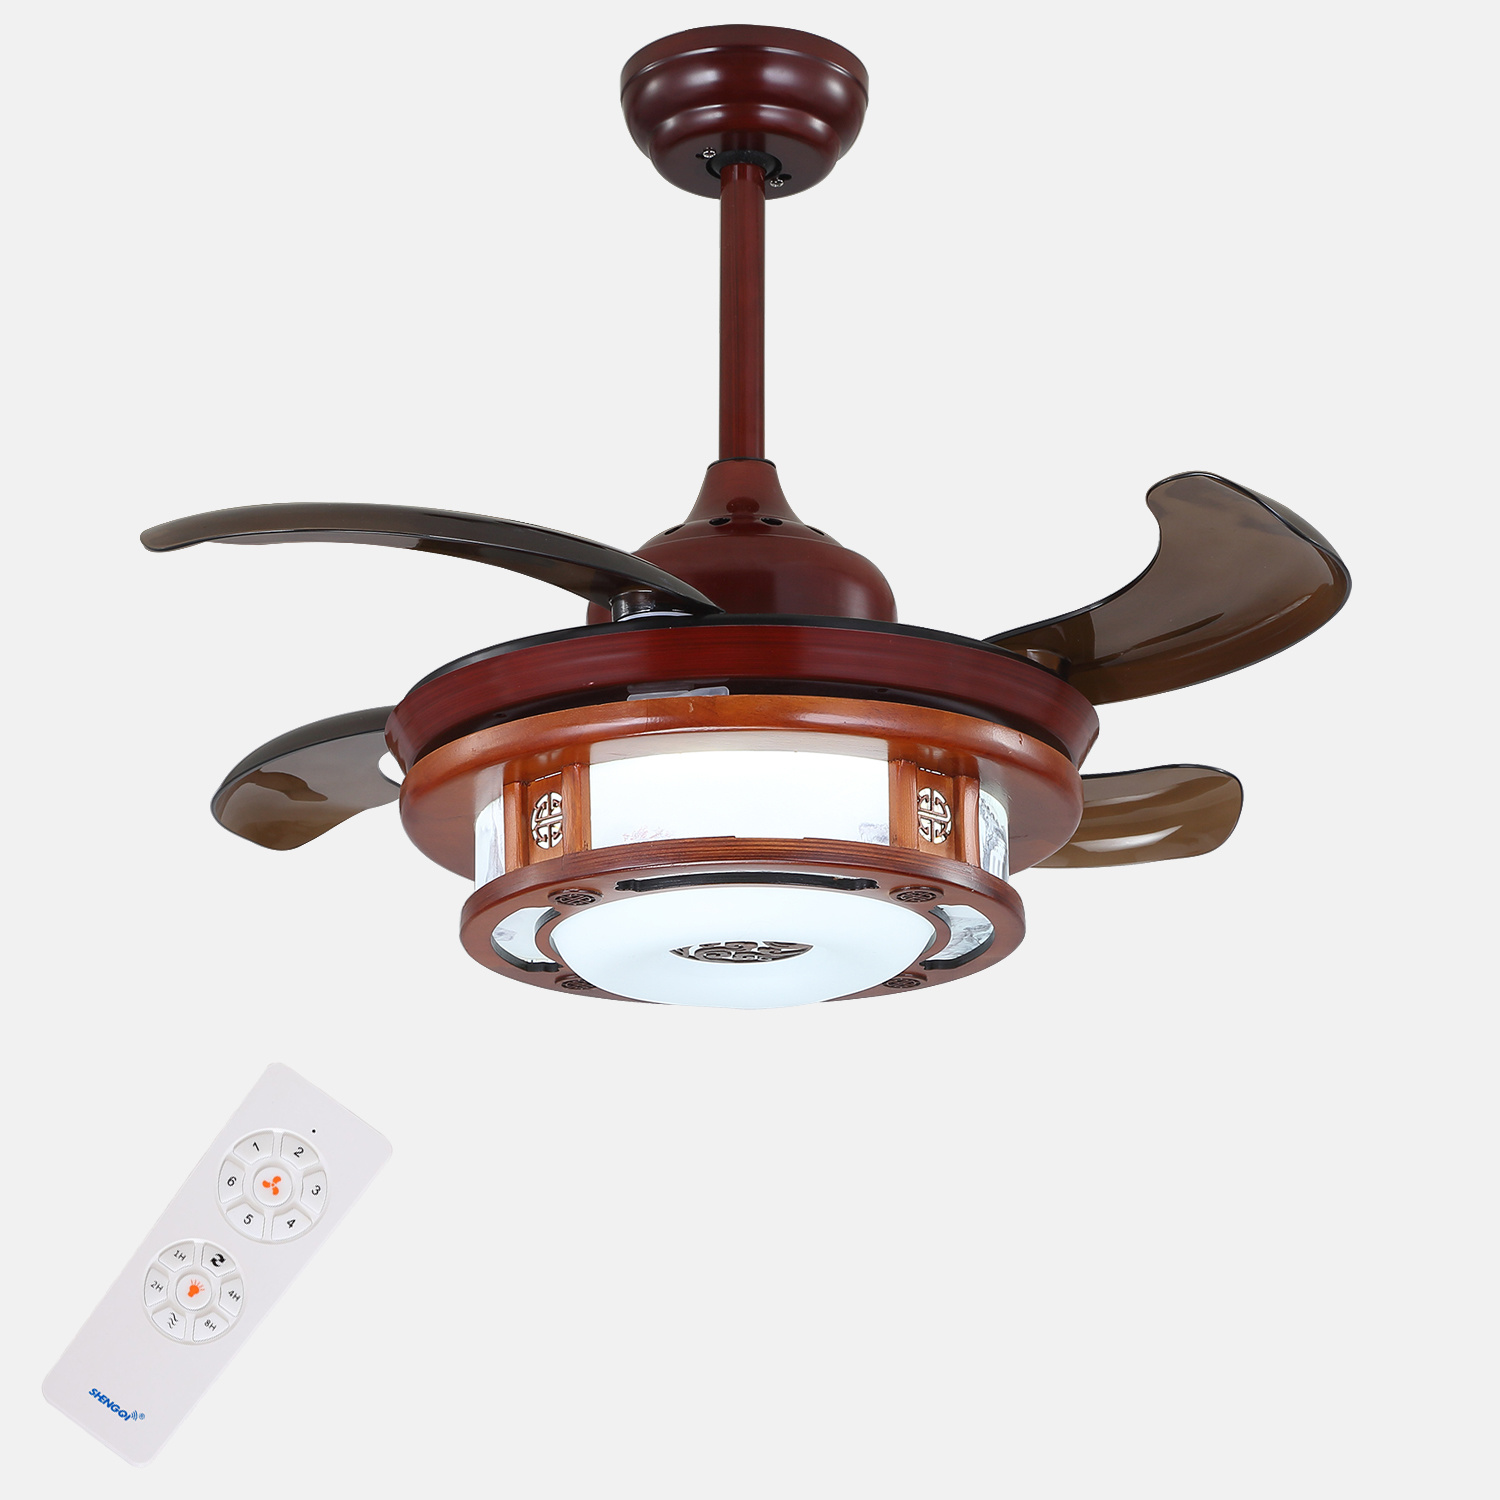 China traditional style ceiling fan with light with hidden blades china ceiling fan ceiling fan with light